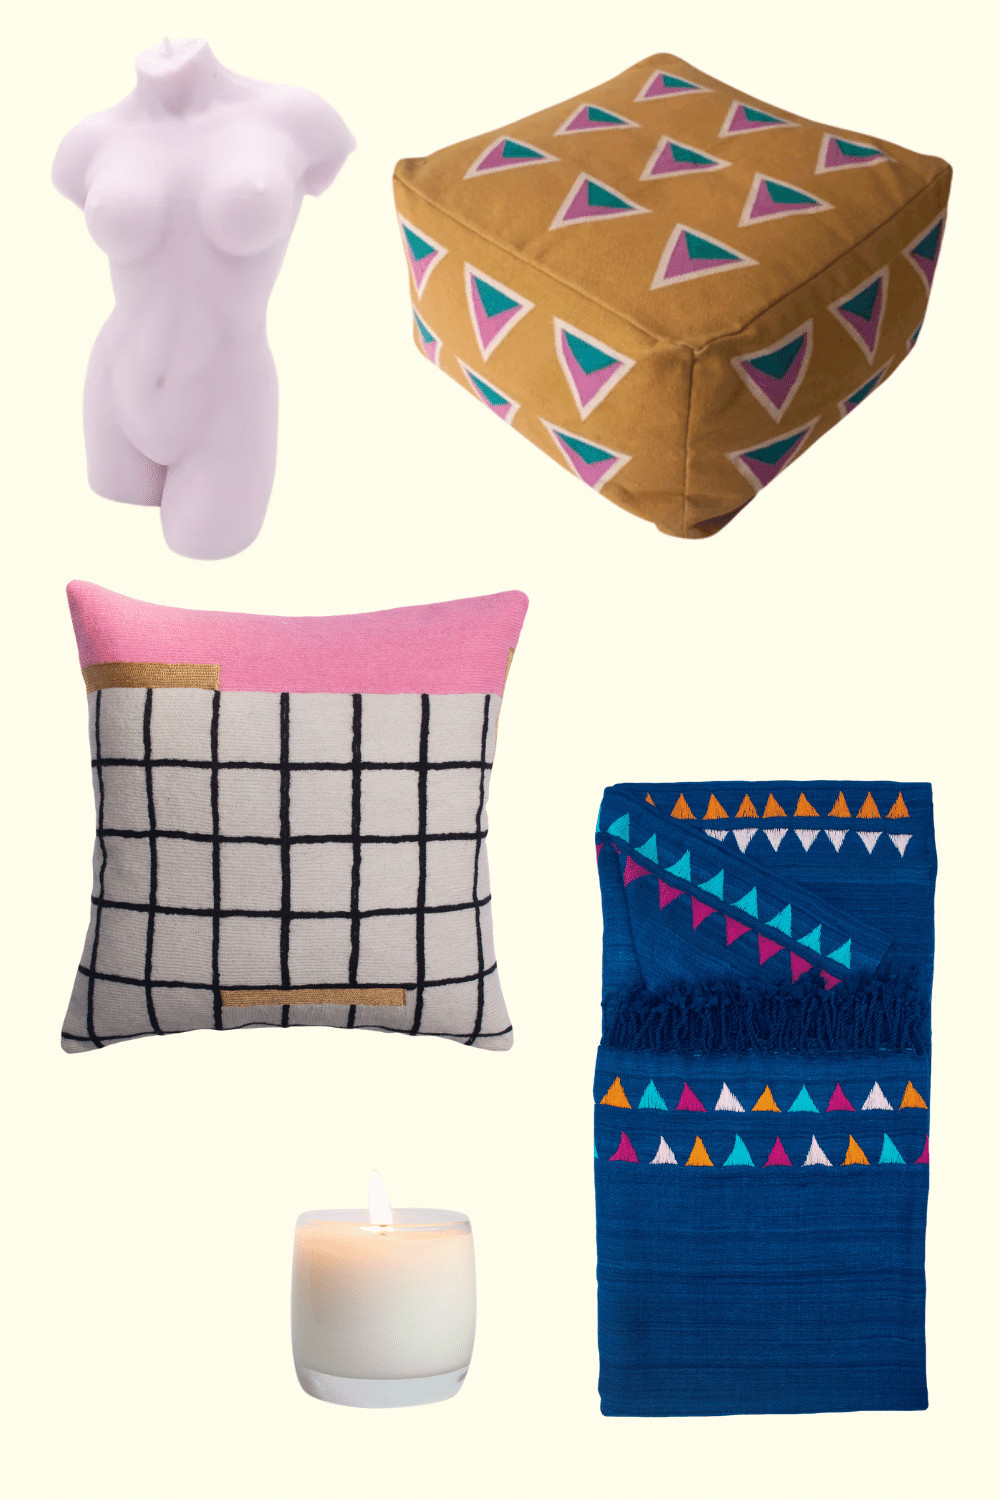 Wow, have you ever seen such beautiful and sustainable holiday gift ideas from BIPOC lead small brands?